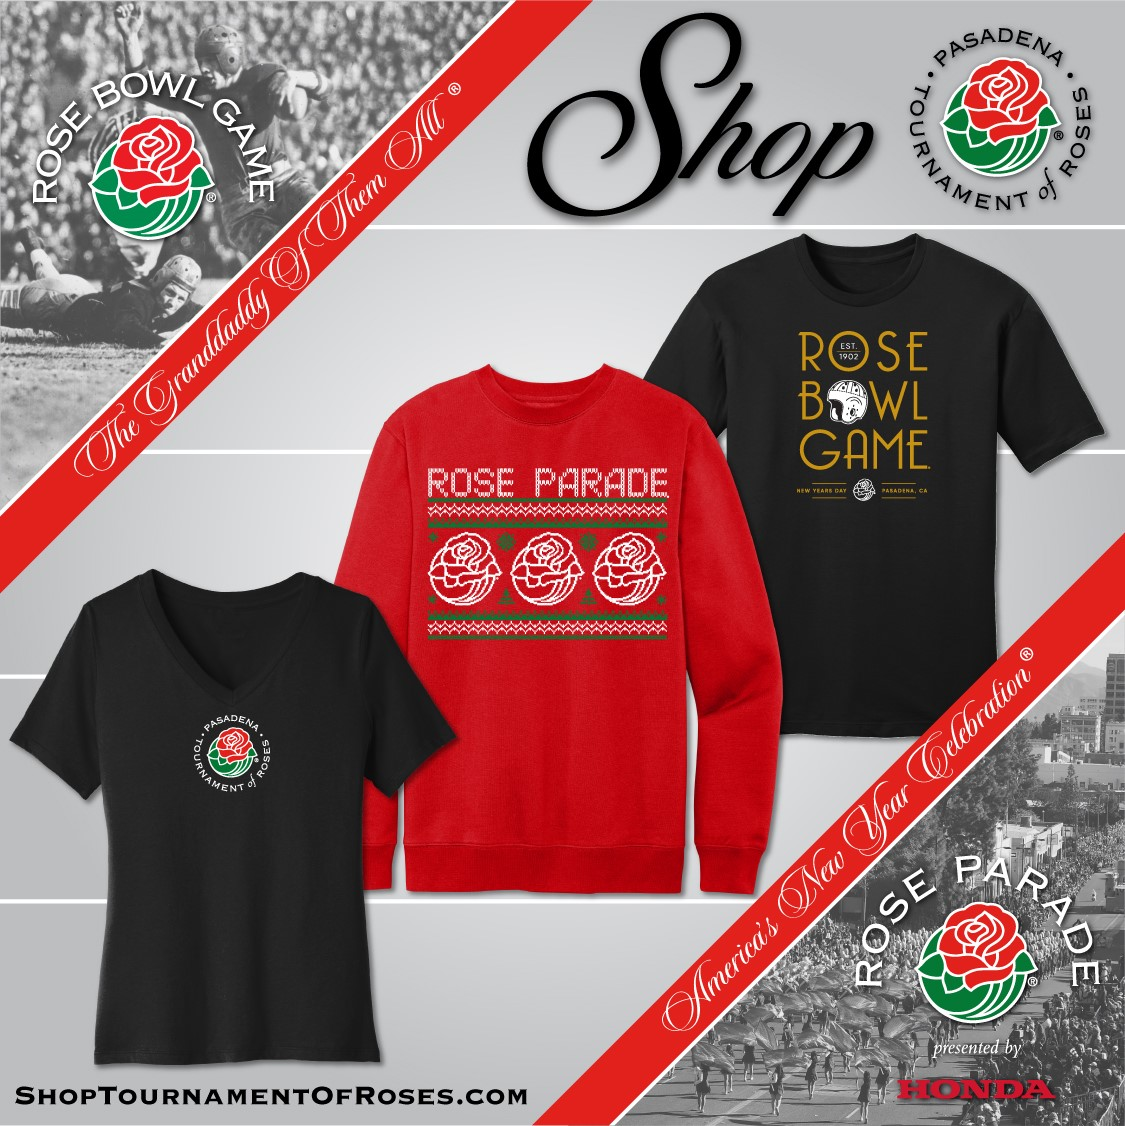 TOURNAMENT OF ROSES GEAR SHOP